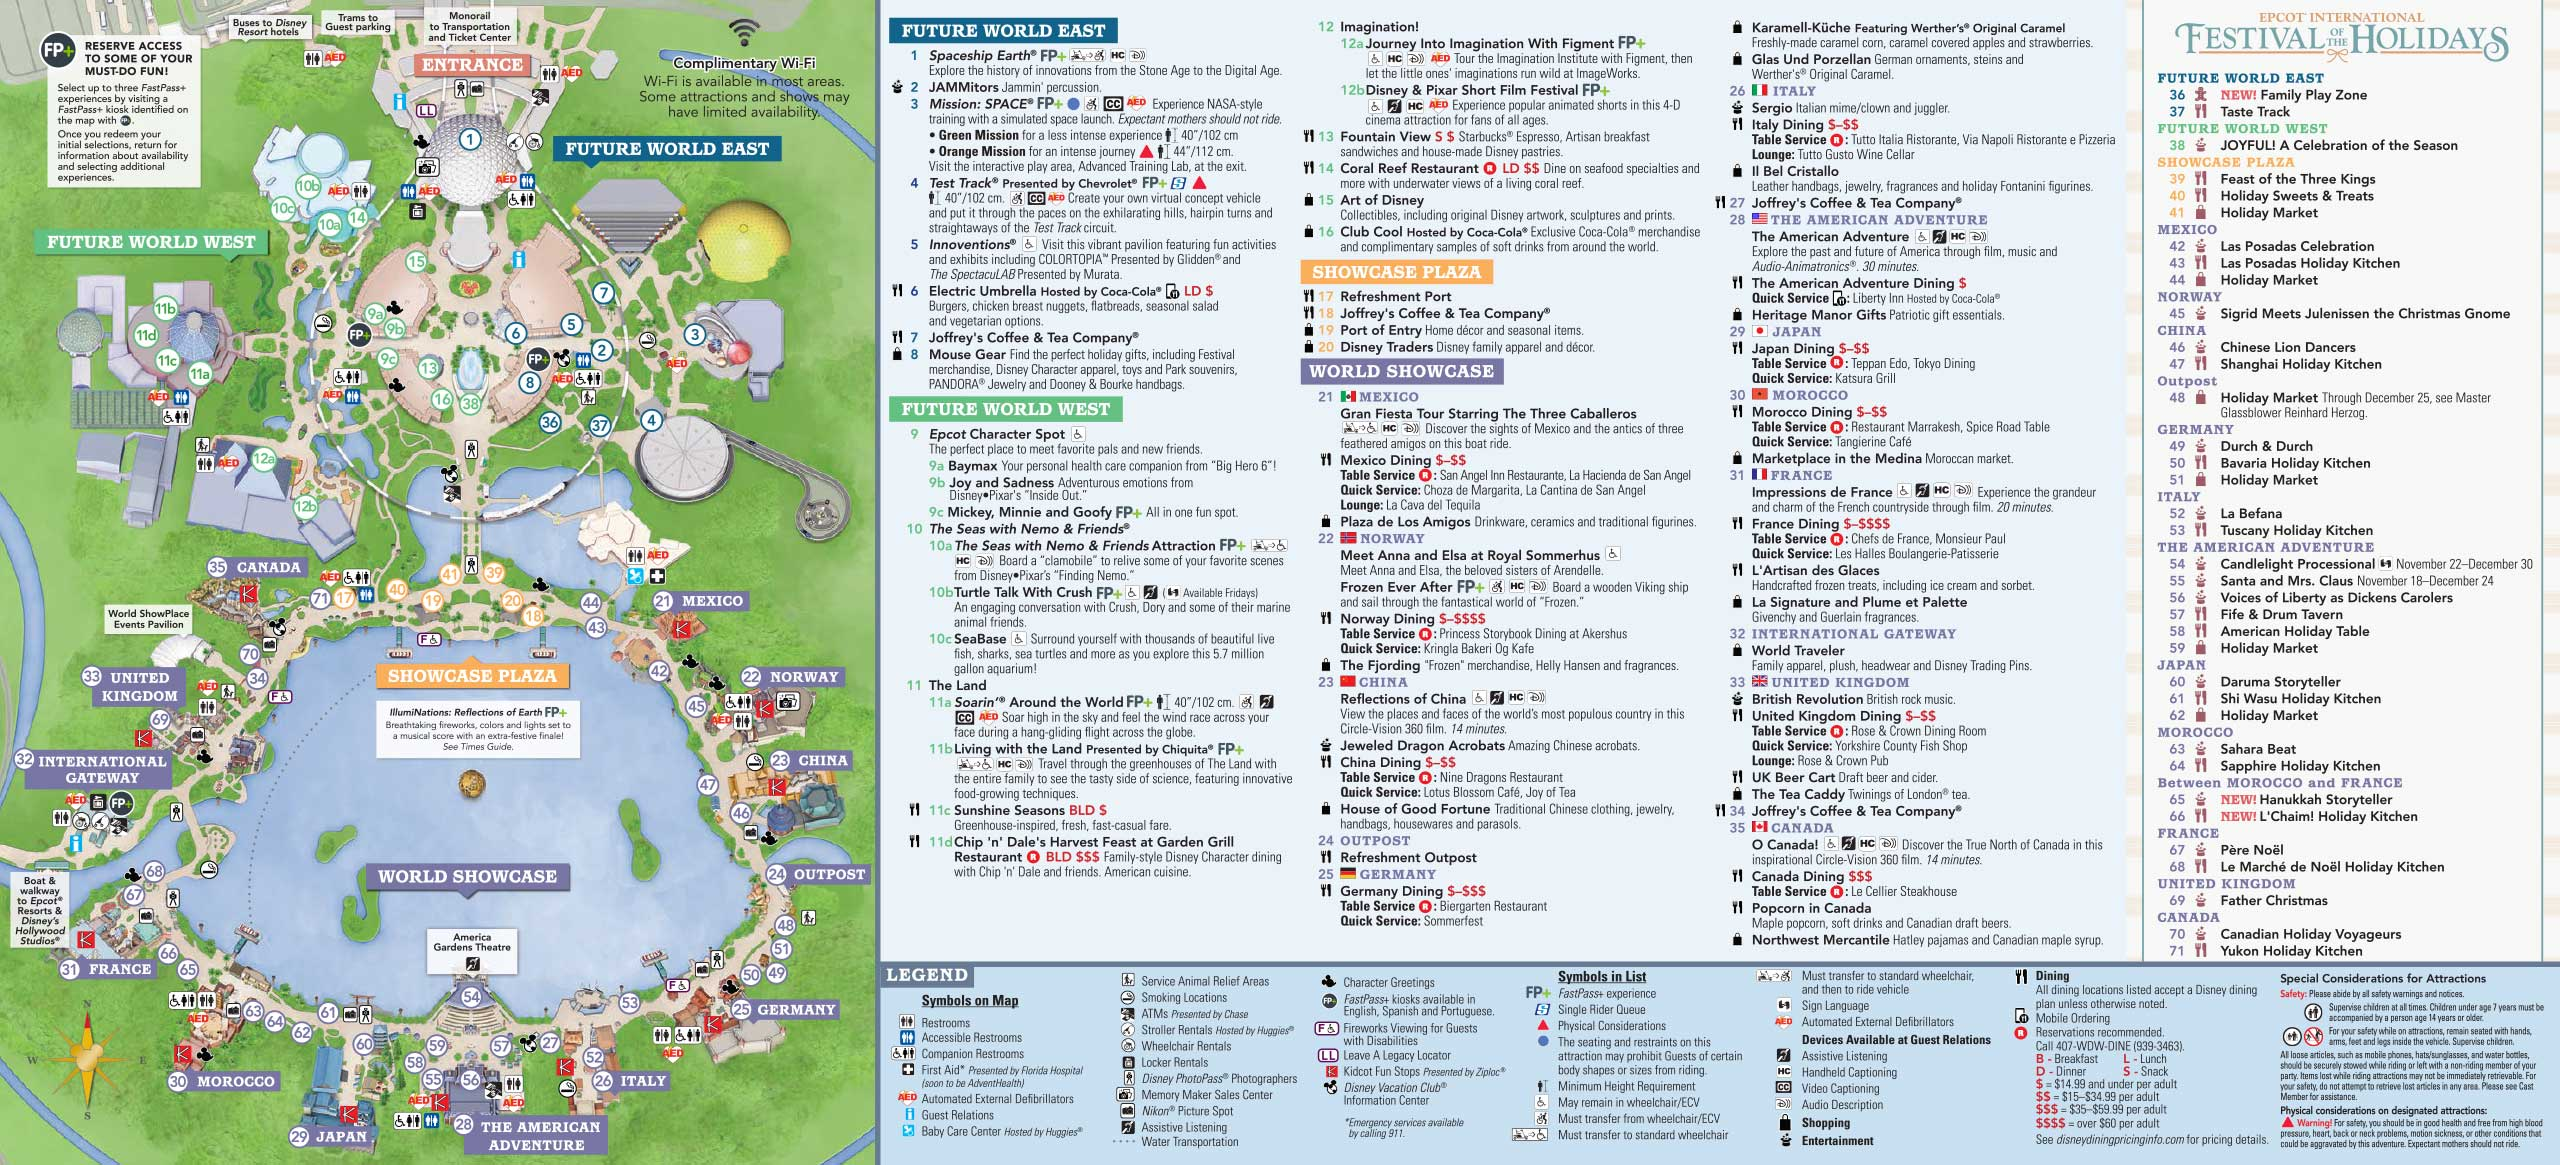 2018 Epcot Festival of the Holidays guide map - Back